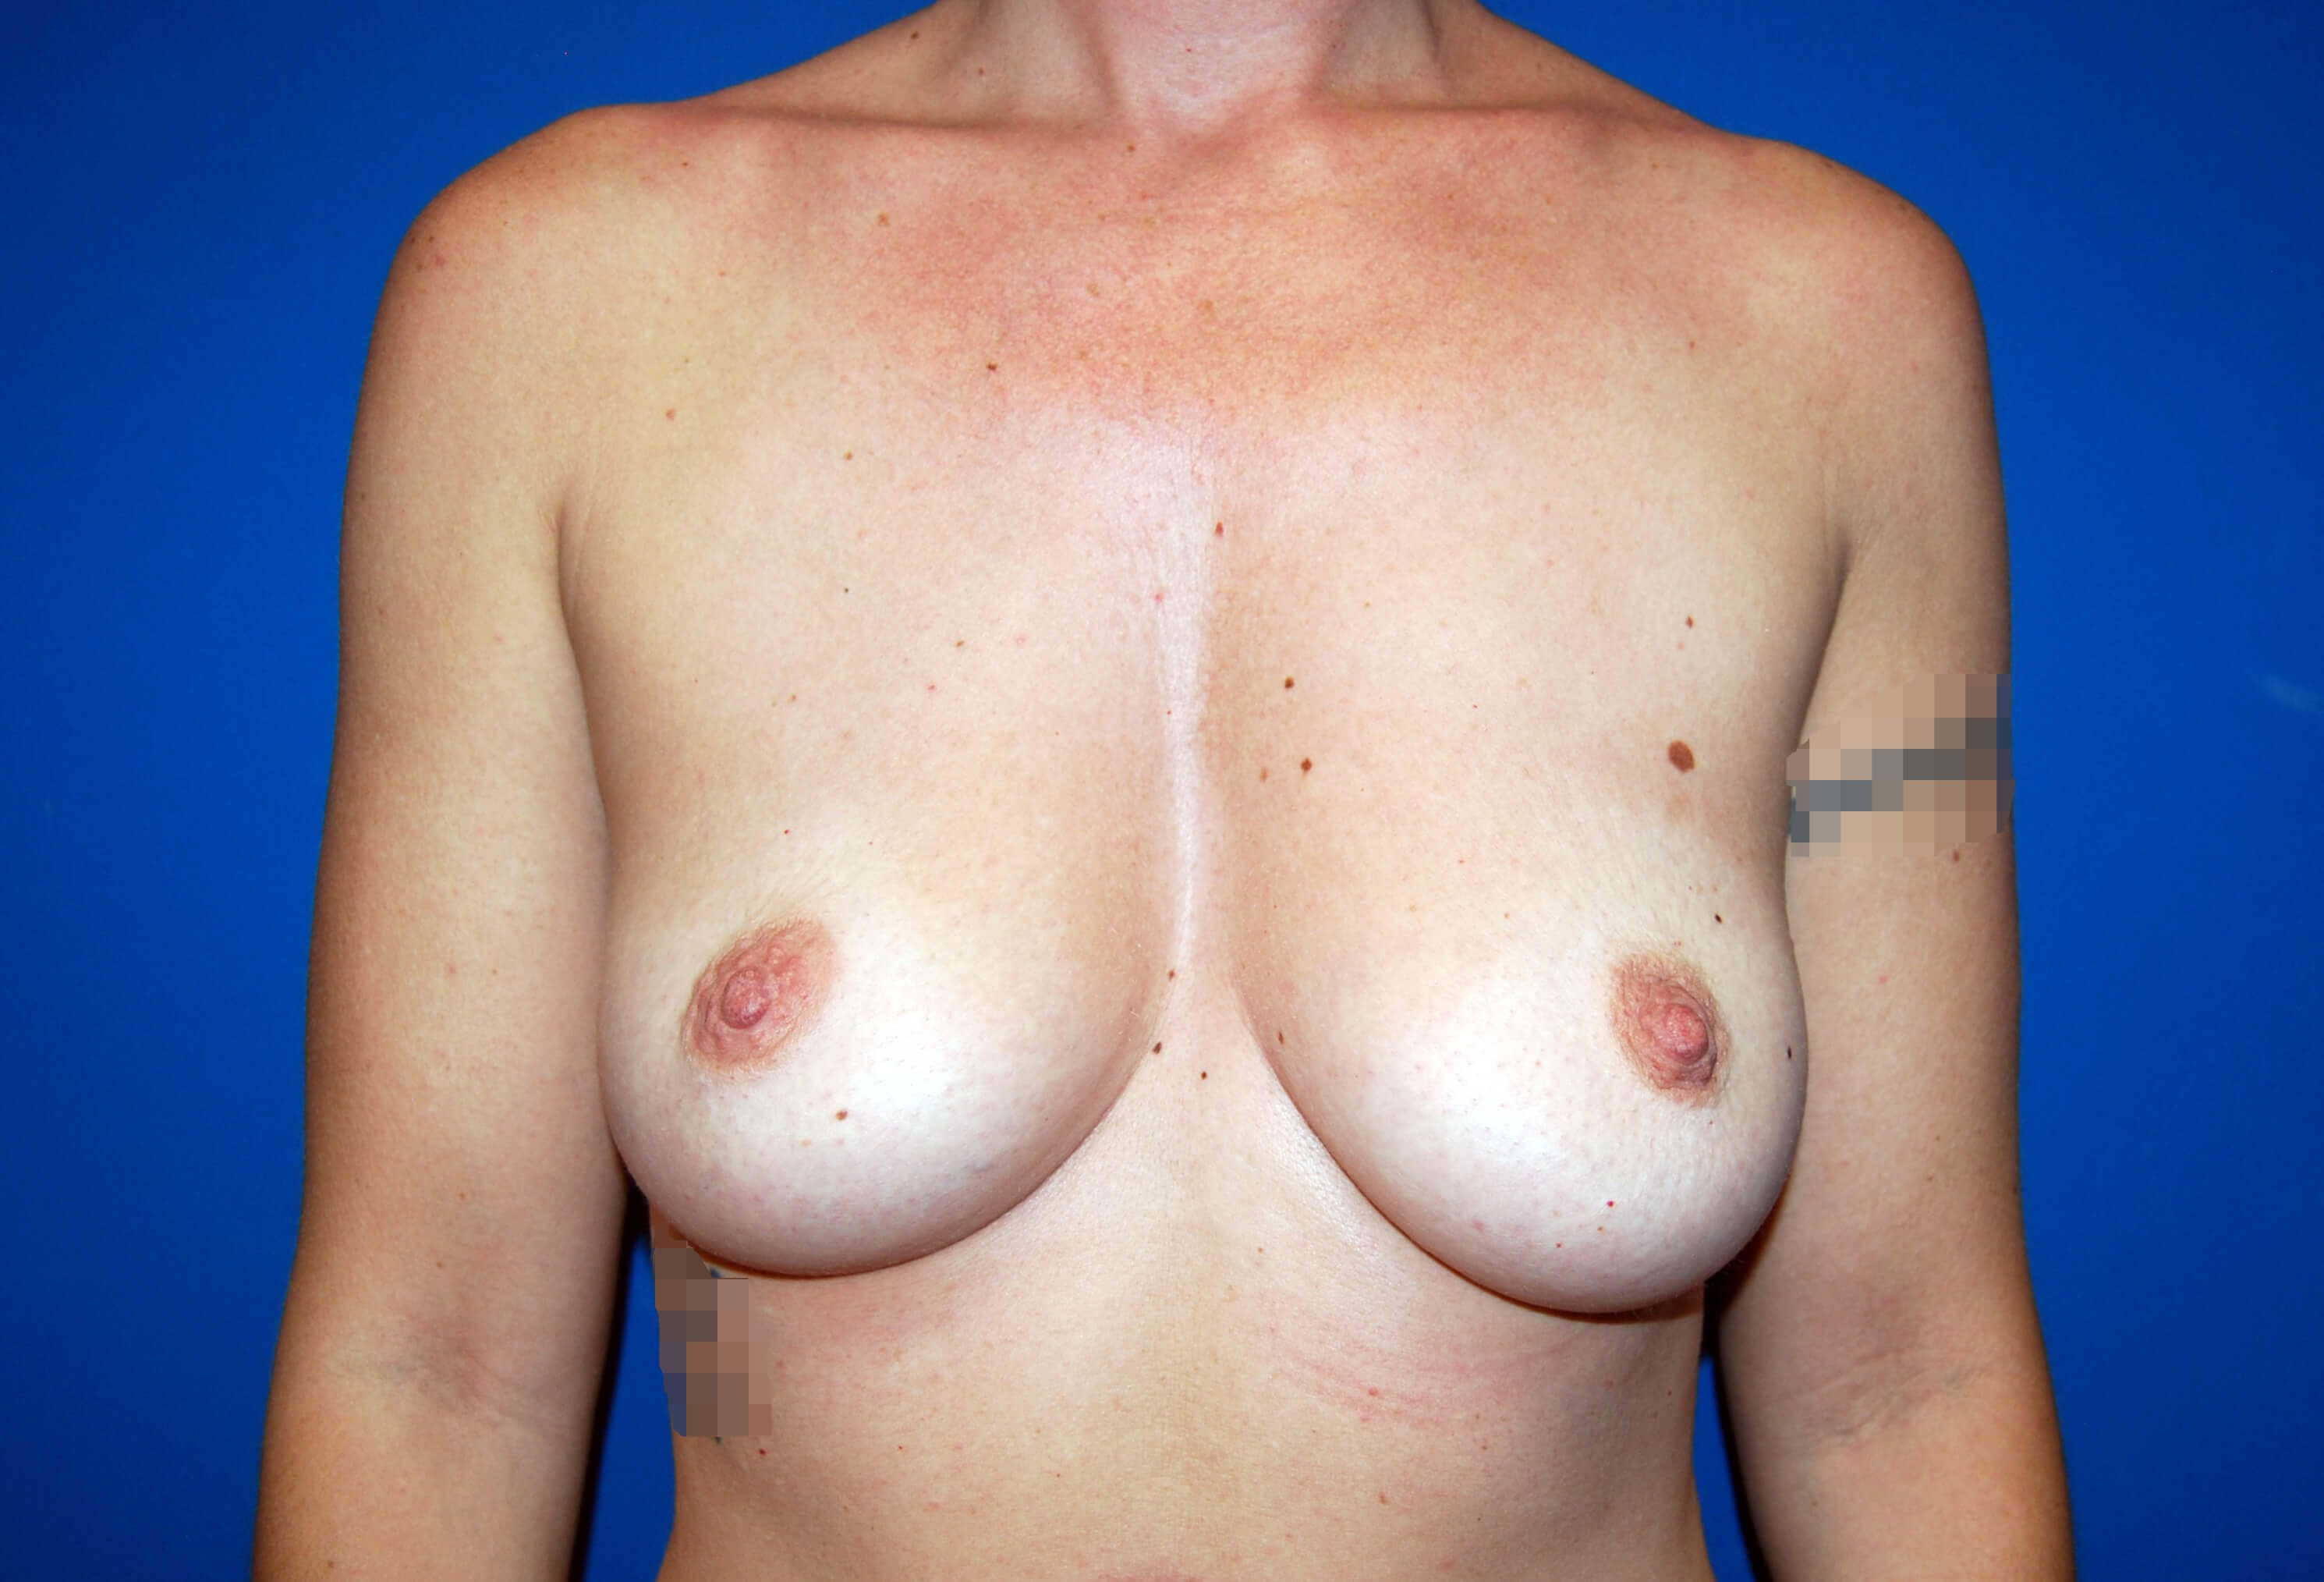 Front View Before Implants